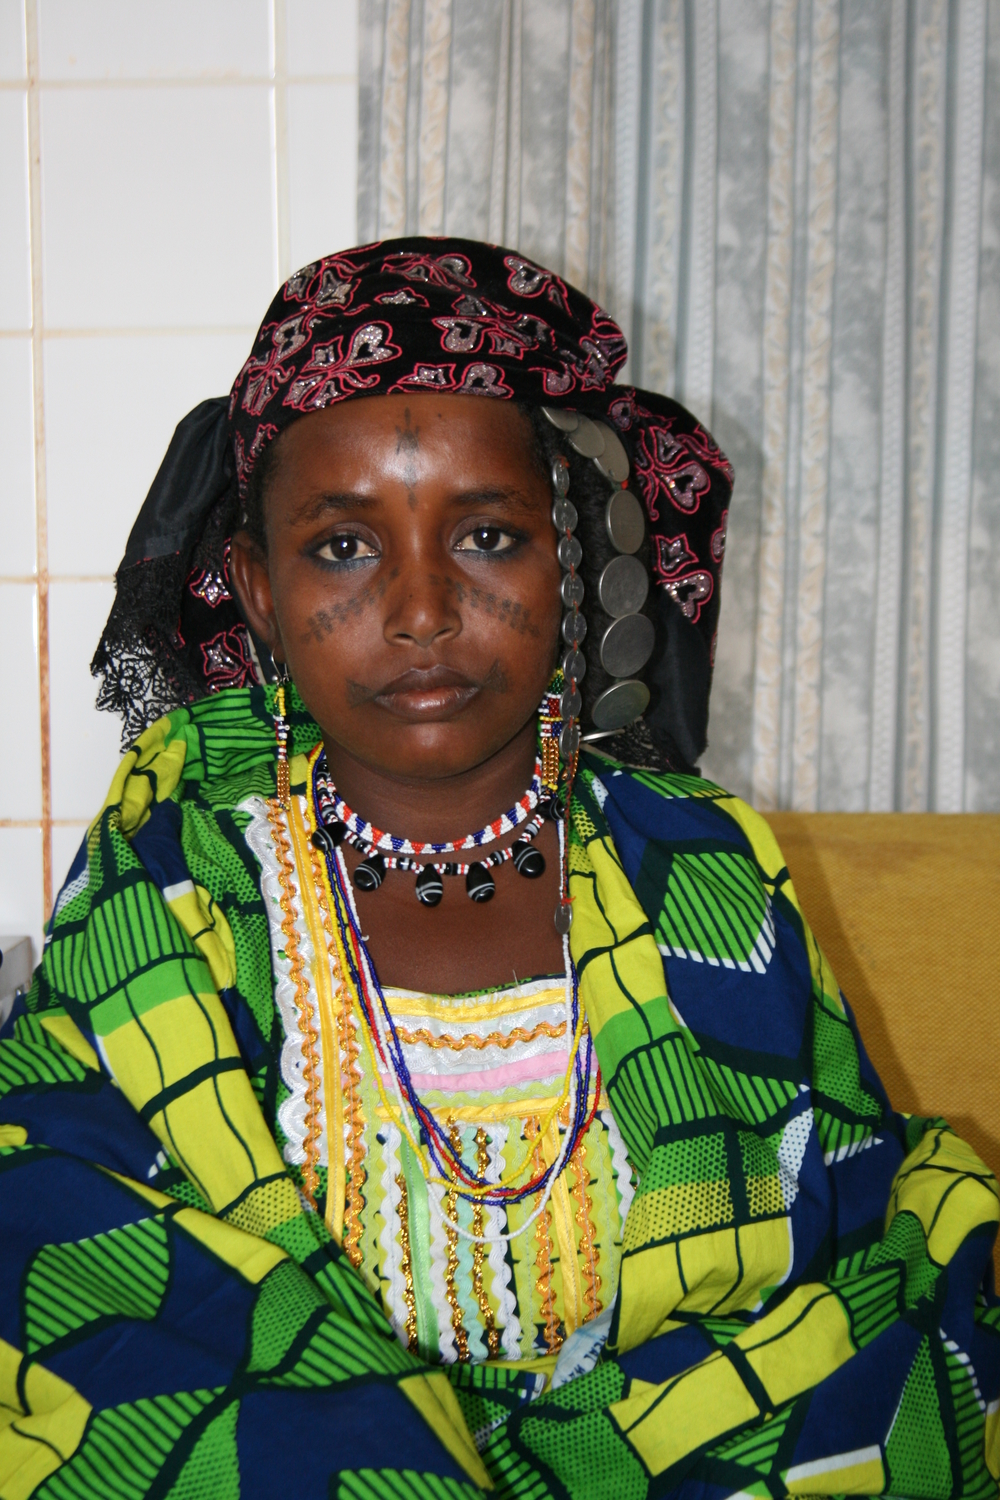 Hadjo Garbo, victim of an early marriage in Niger at age 13. She was pregnant by 14 and suffered a fistula after three days in labour and a still-birth.